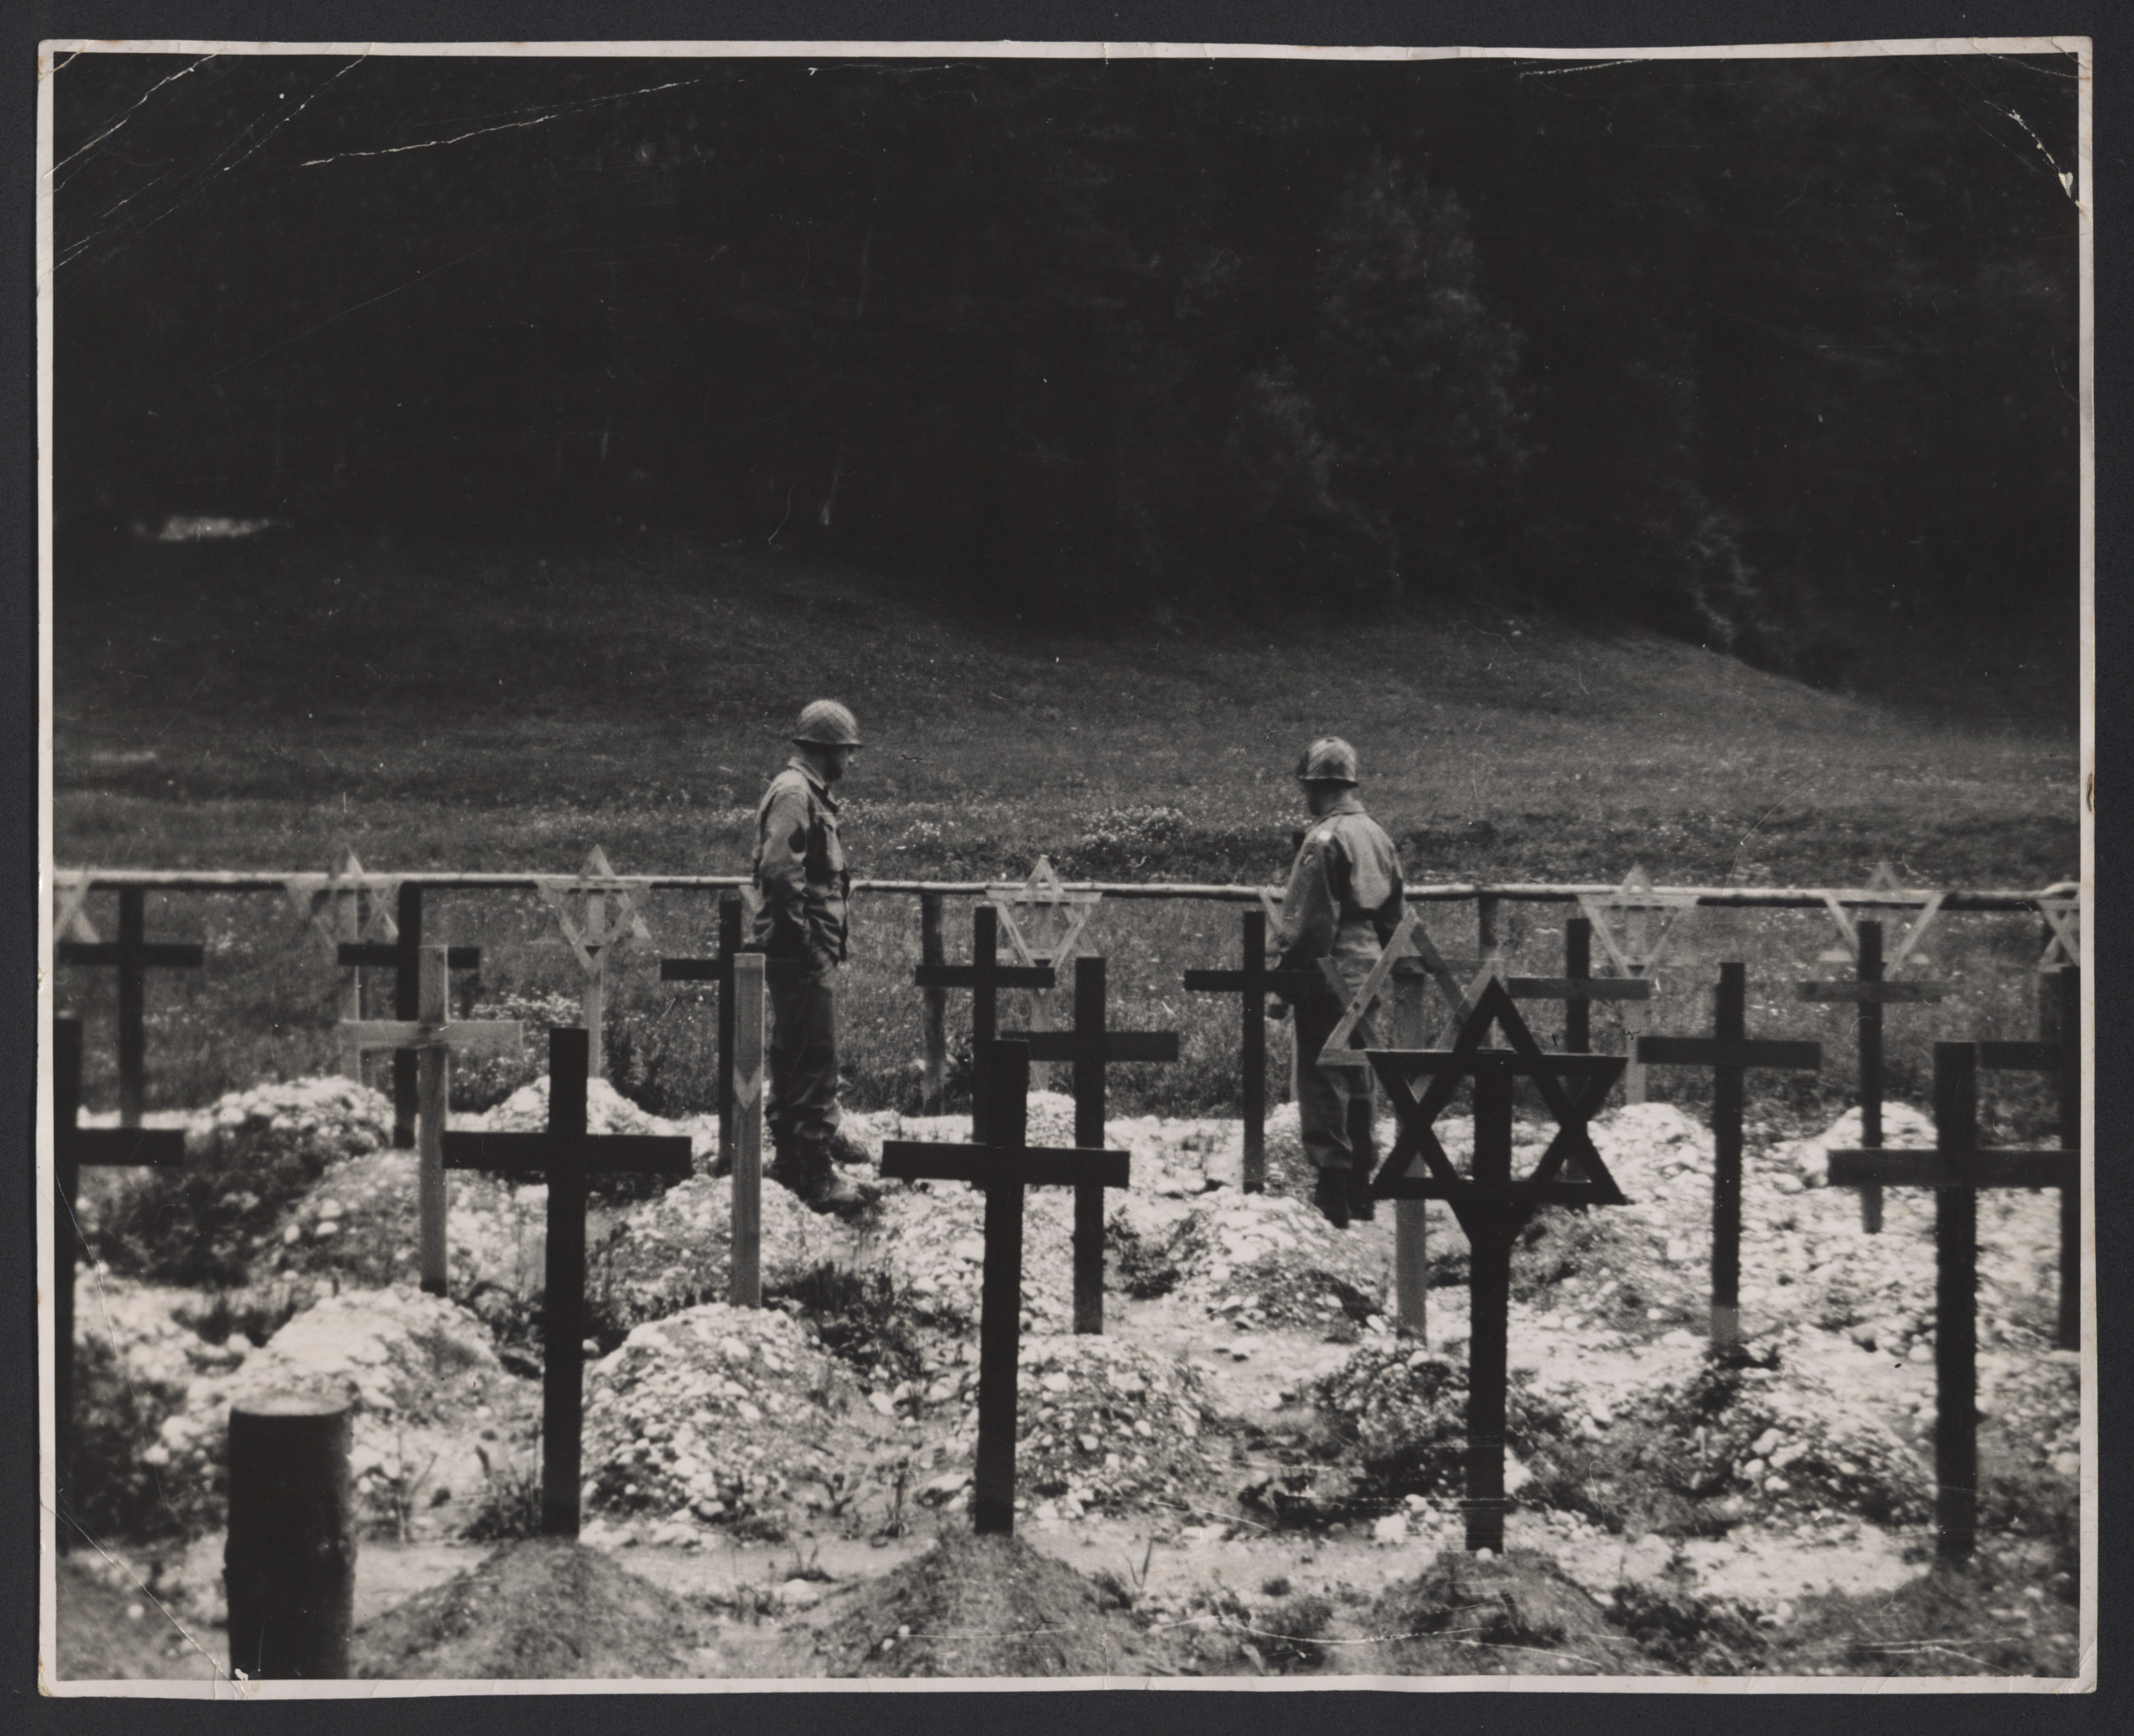 Two American soldiers walk in a cemetery of newly dug graves for both Jewish and Christian fallen comrades.